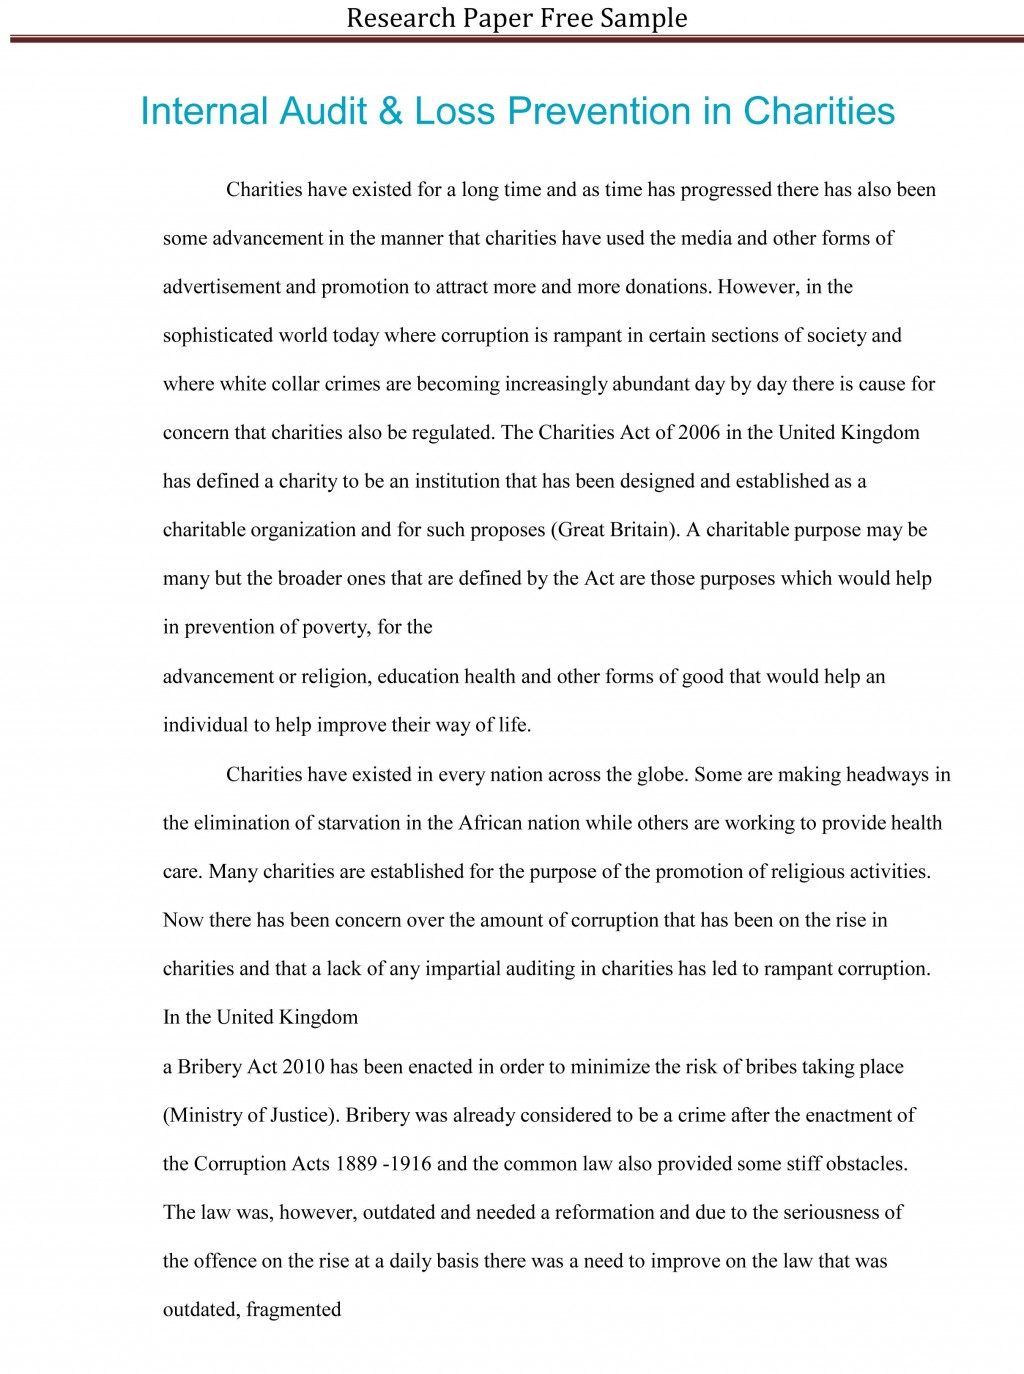 004 Research Paper In Unusual Education On Ict Pdf Educational Technology Physical Large